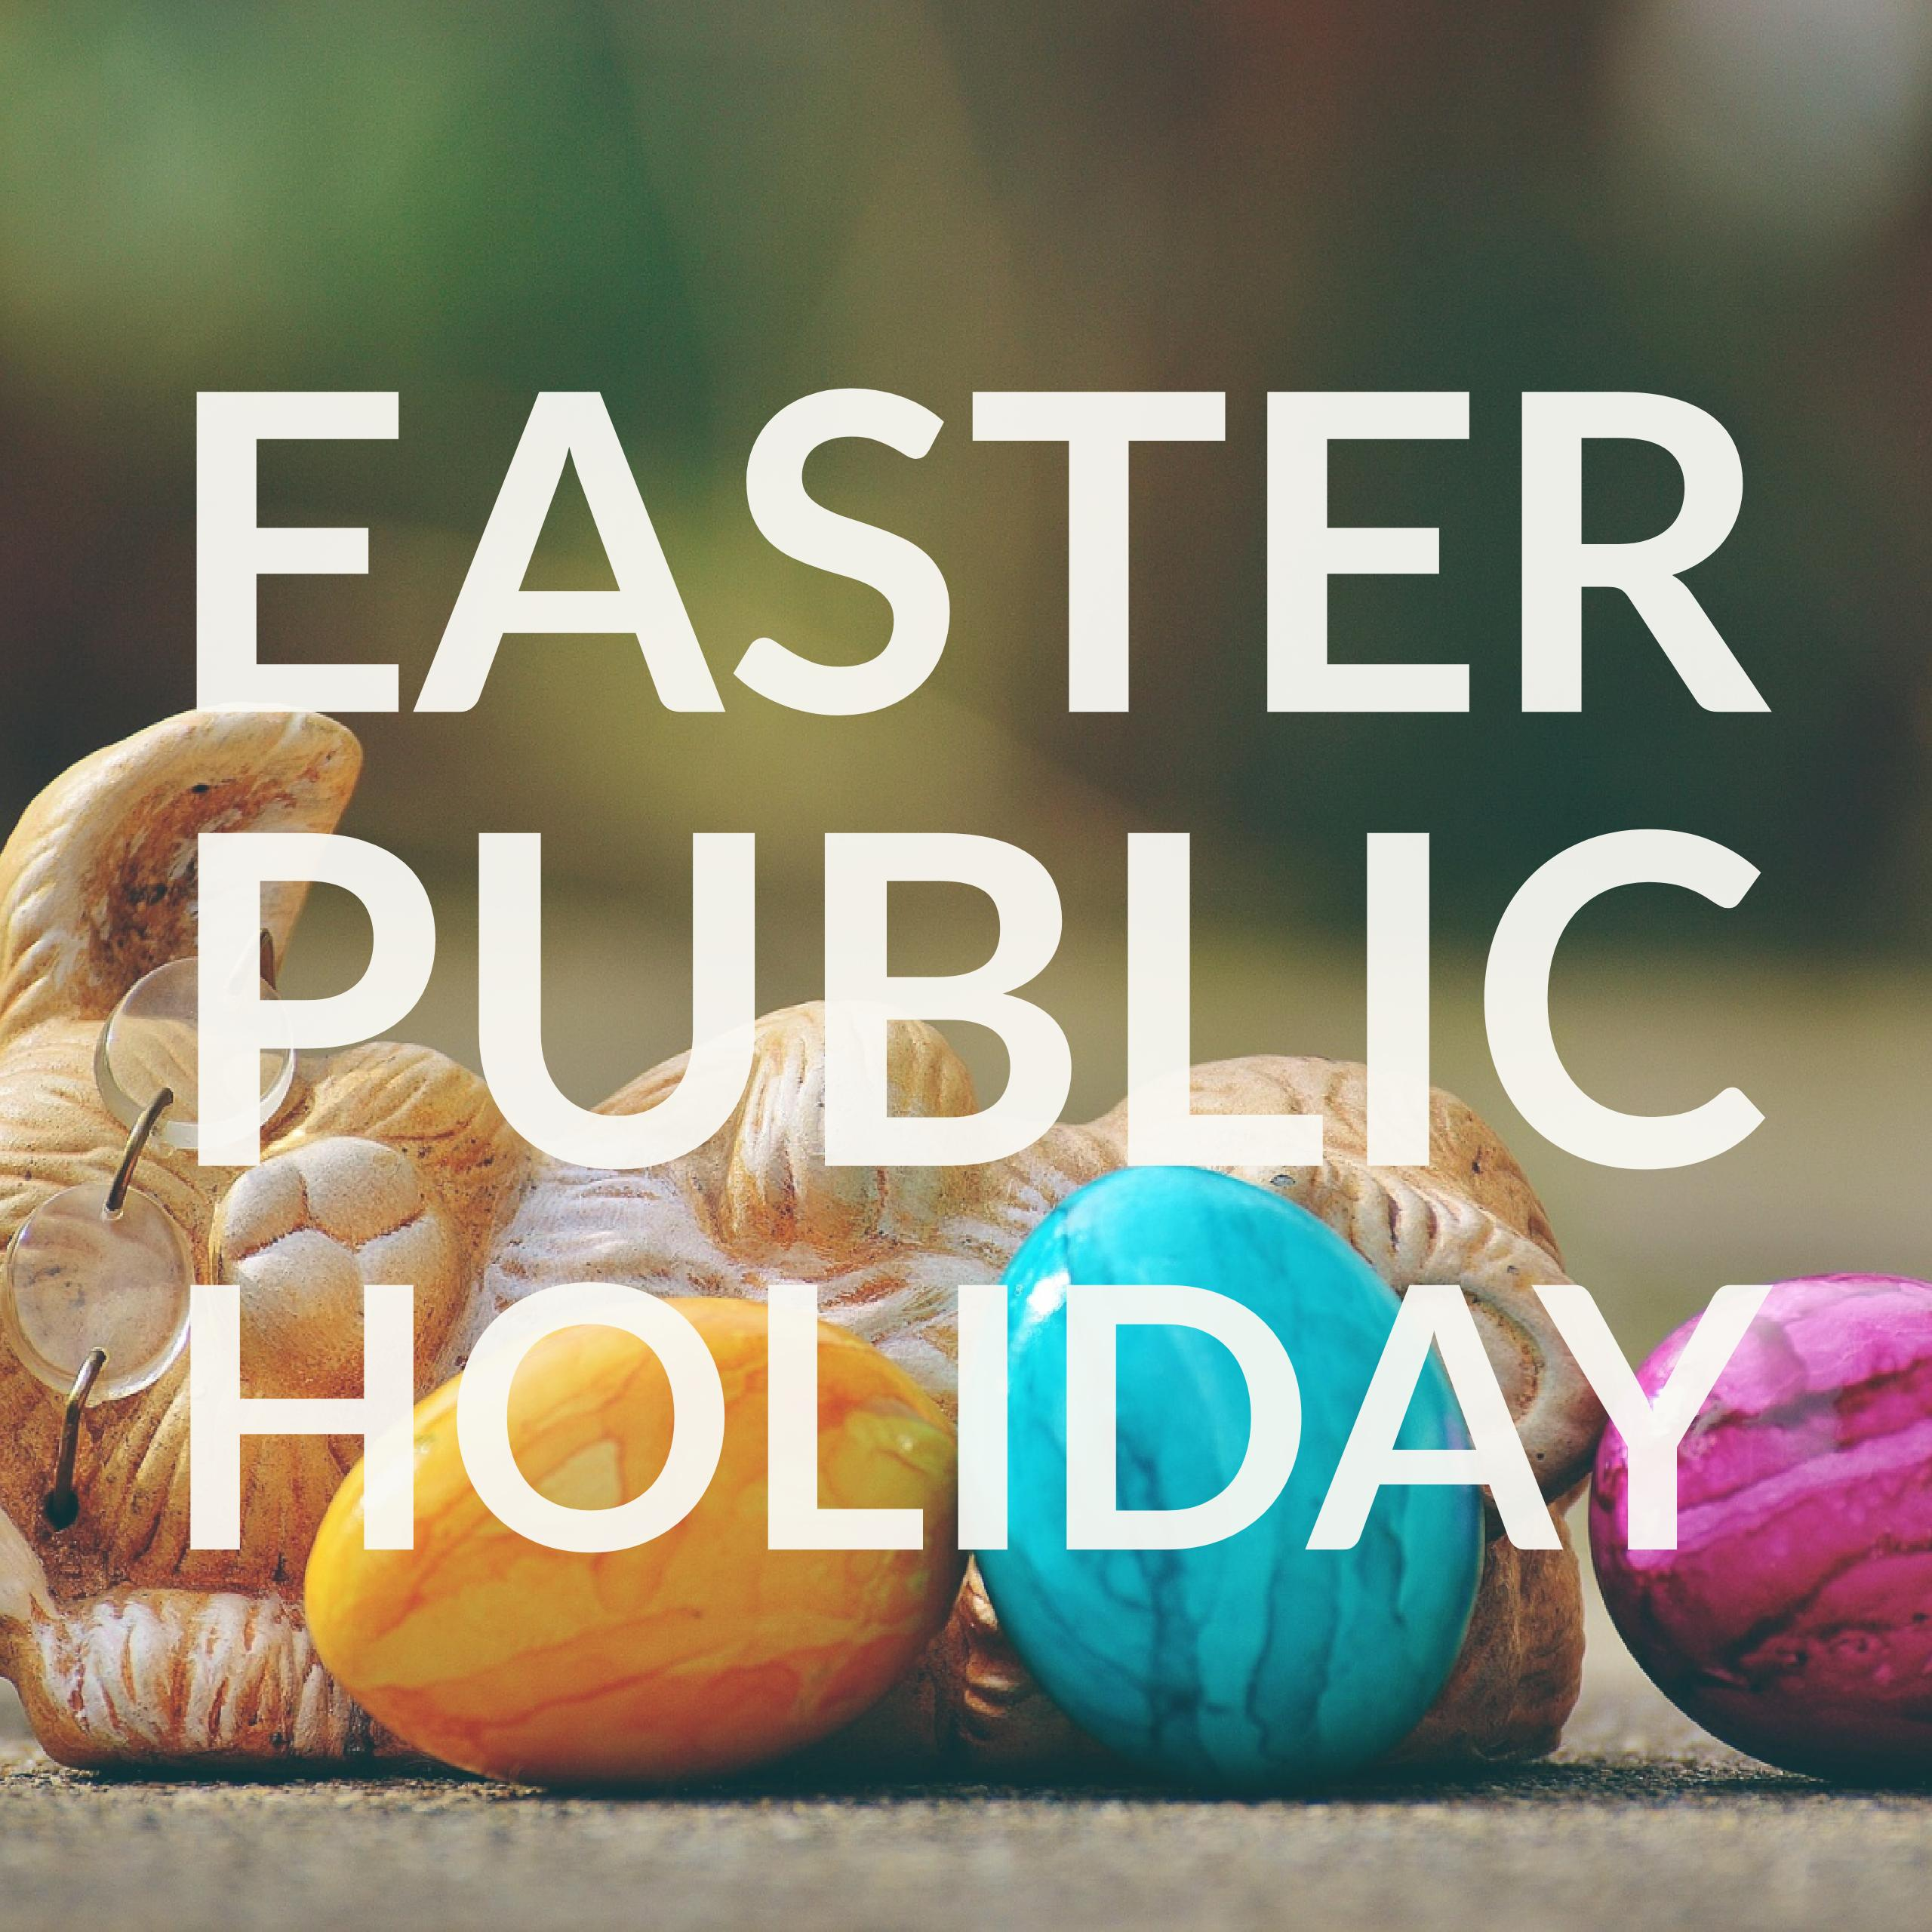 Easter Tuesday Public Holiday